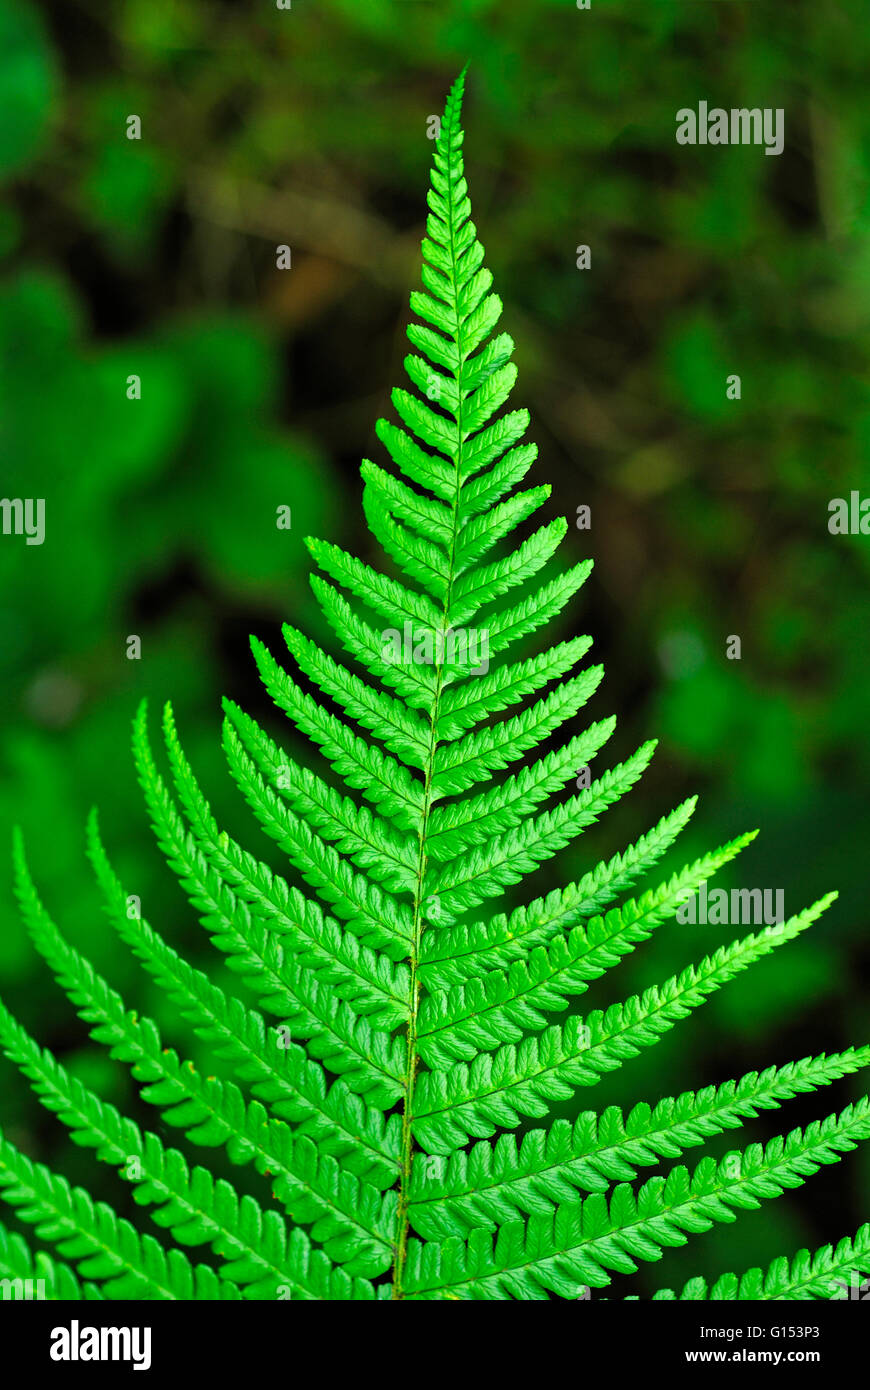 FERN LEAF - Stock Image